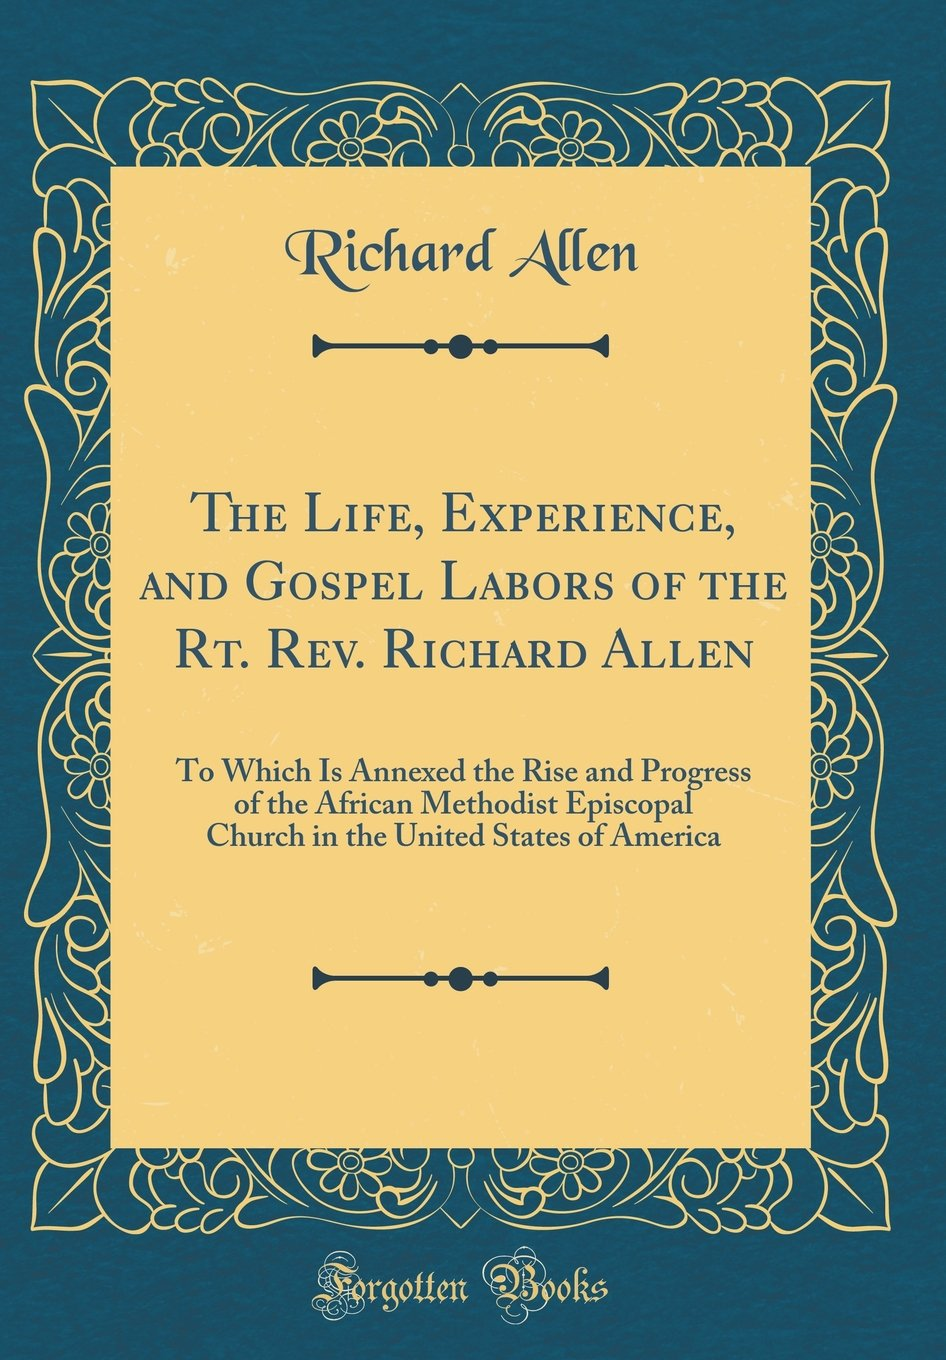 The Life, Experience, and Gospel Labours of the Rt. Rev. Richard Allen